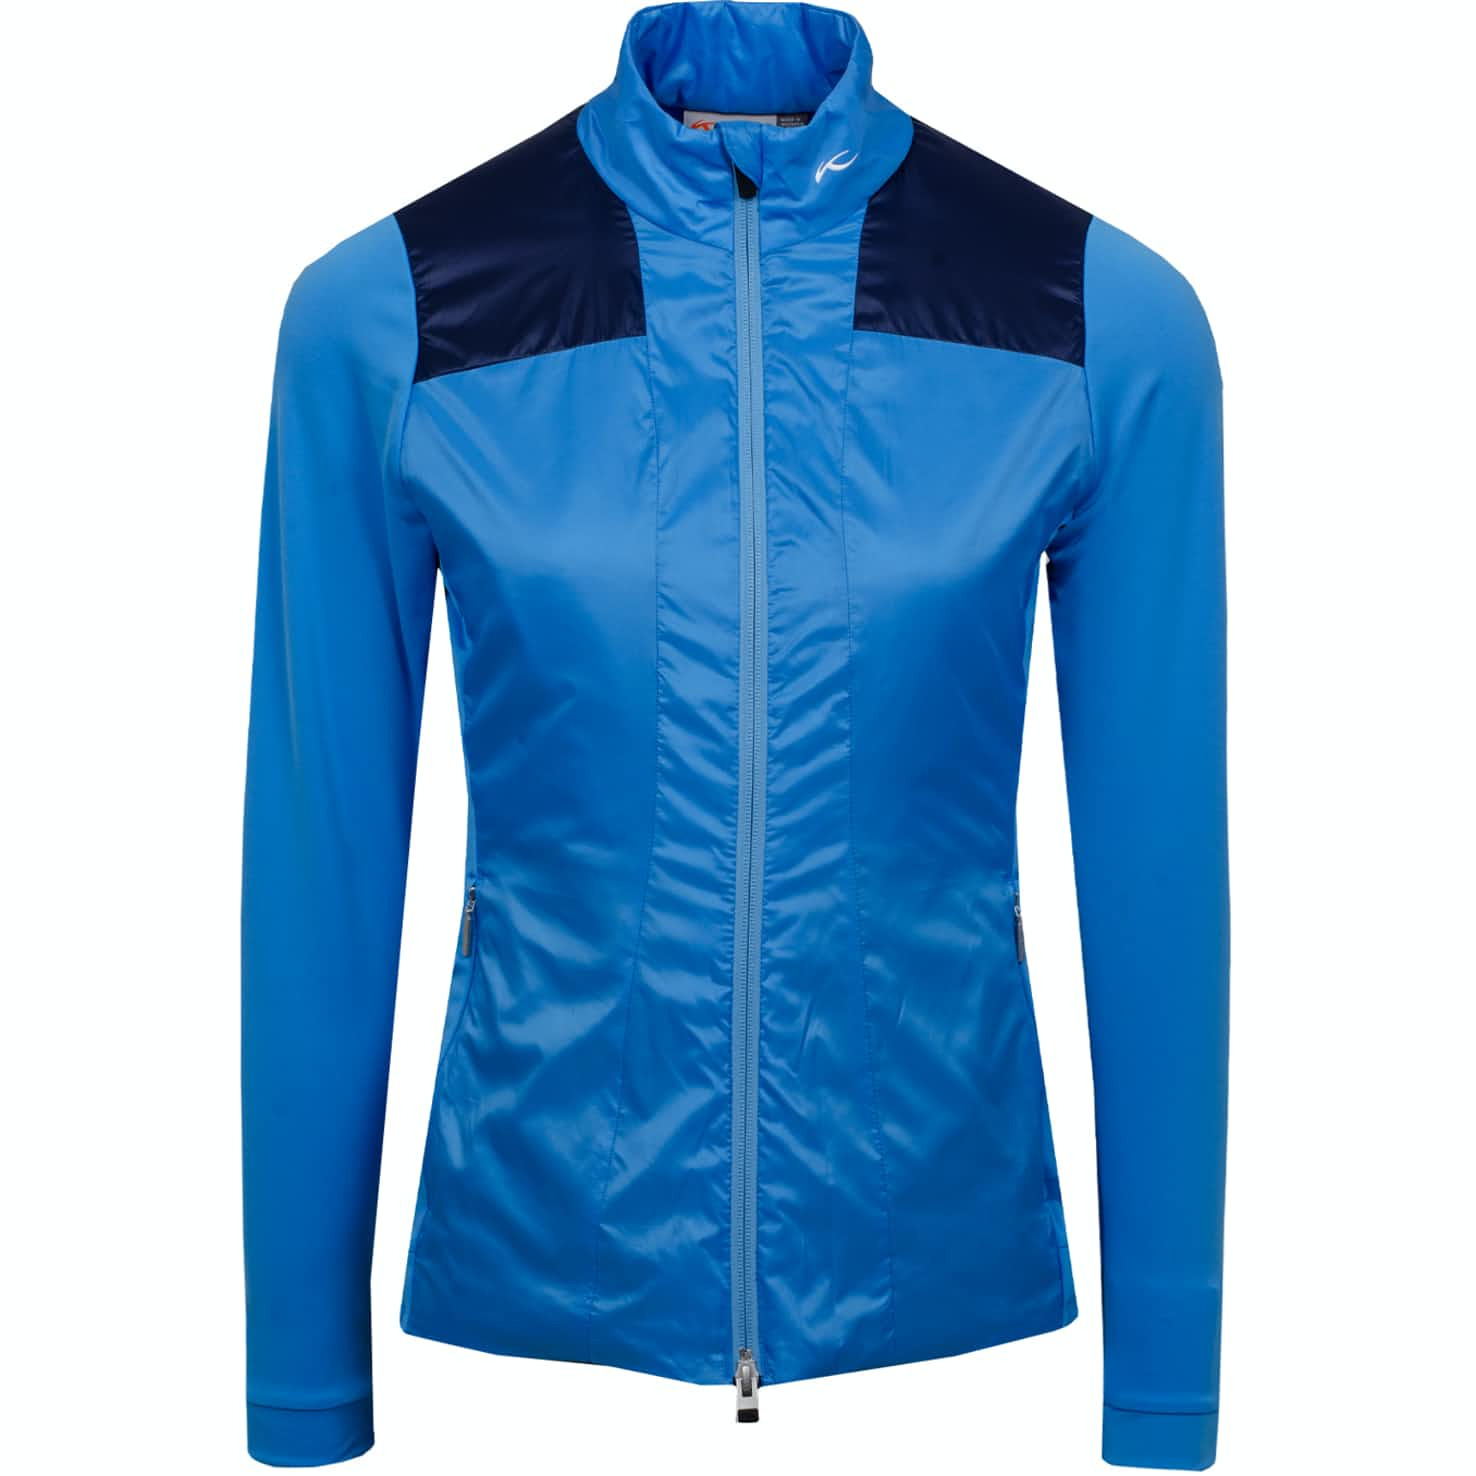 Womens Retention Jacket Azure Blue/Atlanta Blue - SS19